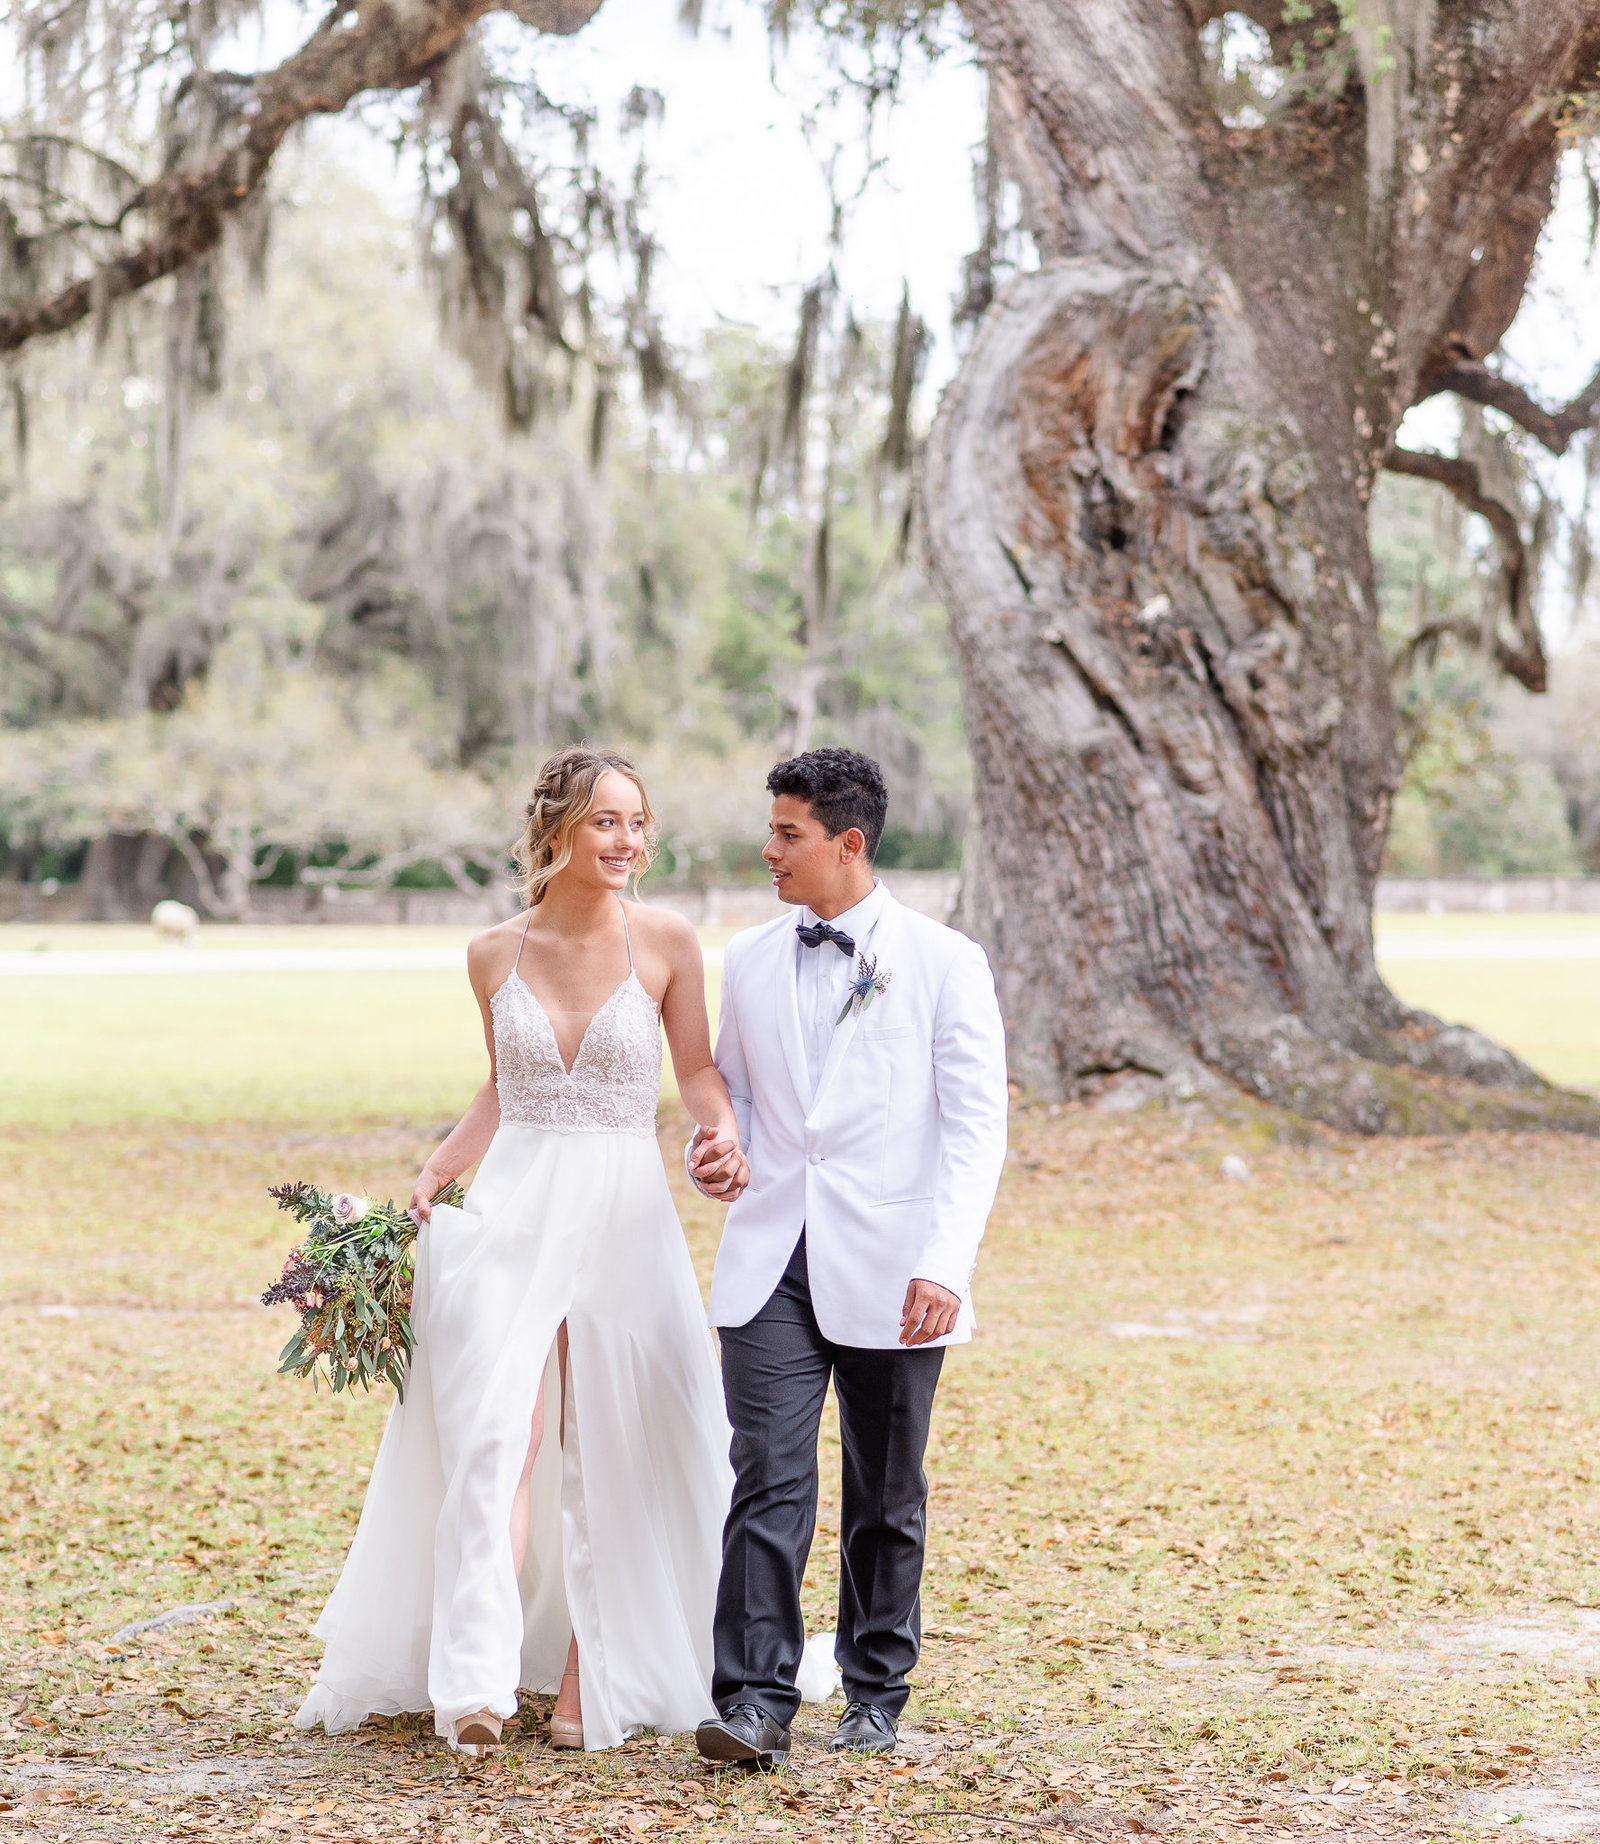 middletonplacewedding.charlestonsc.2019.sbp-8